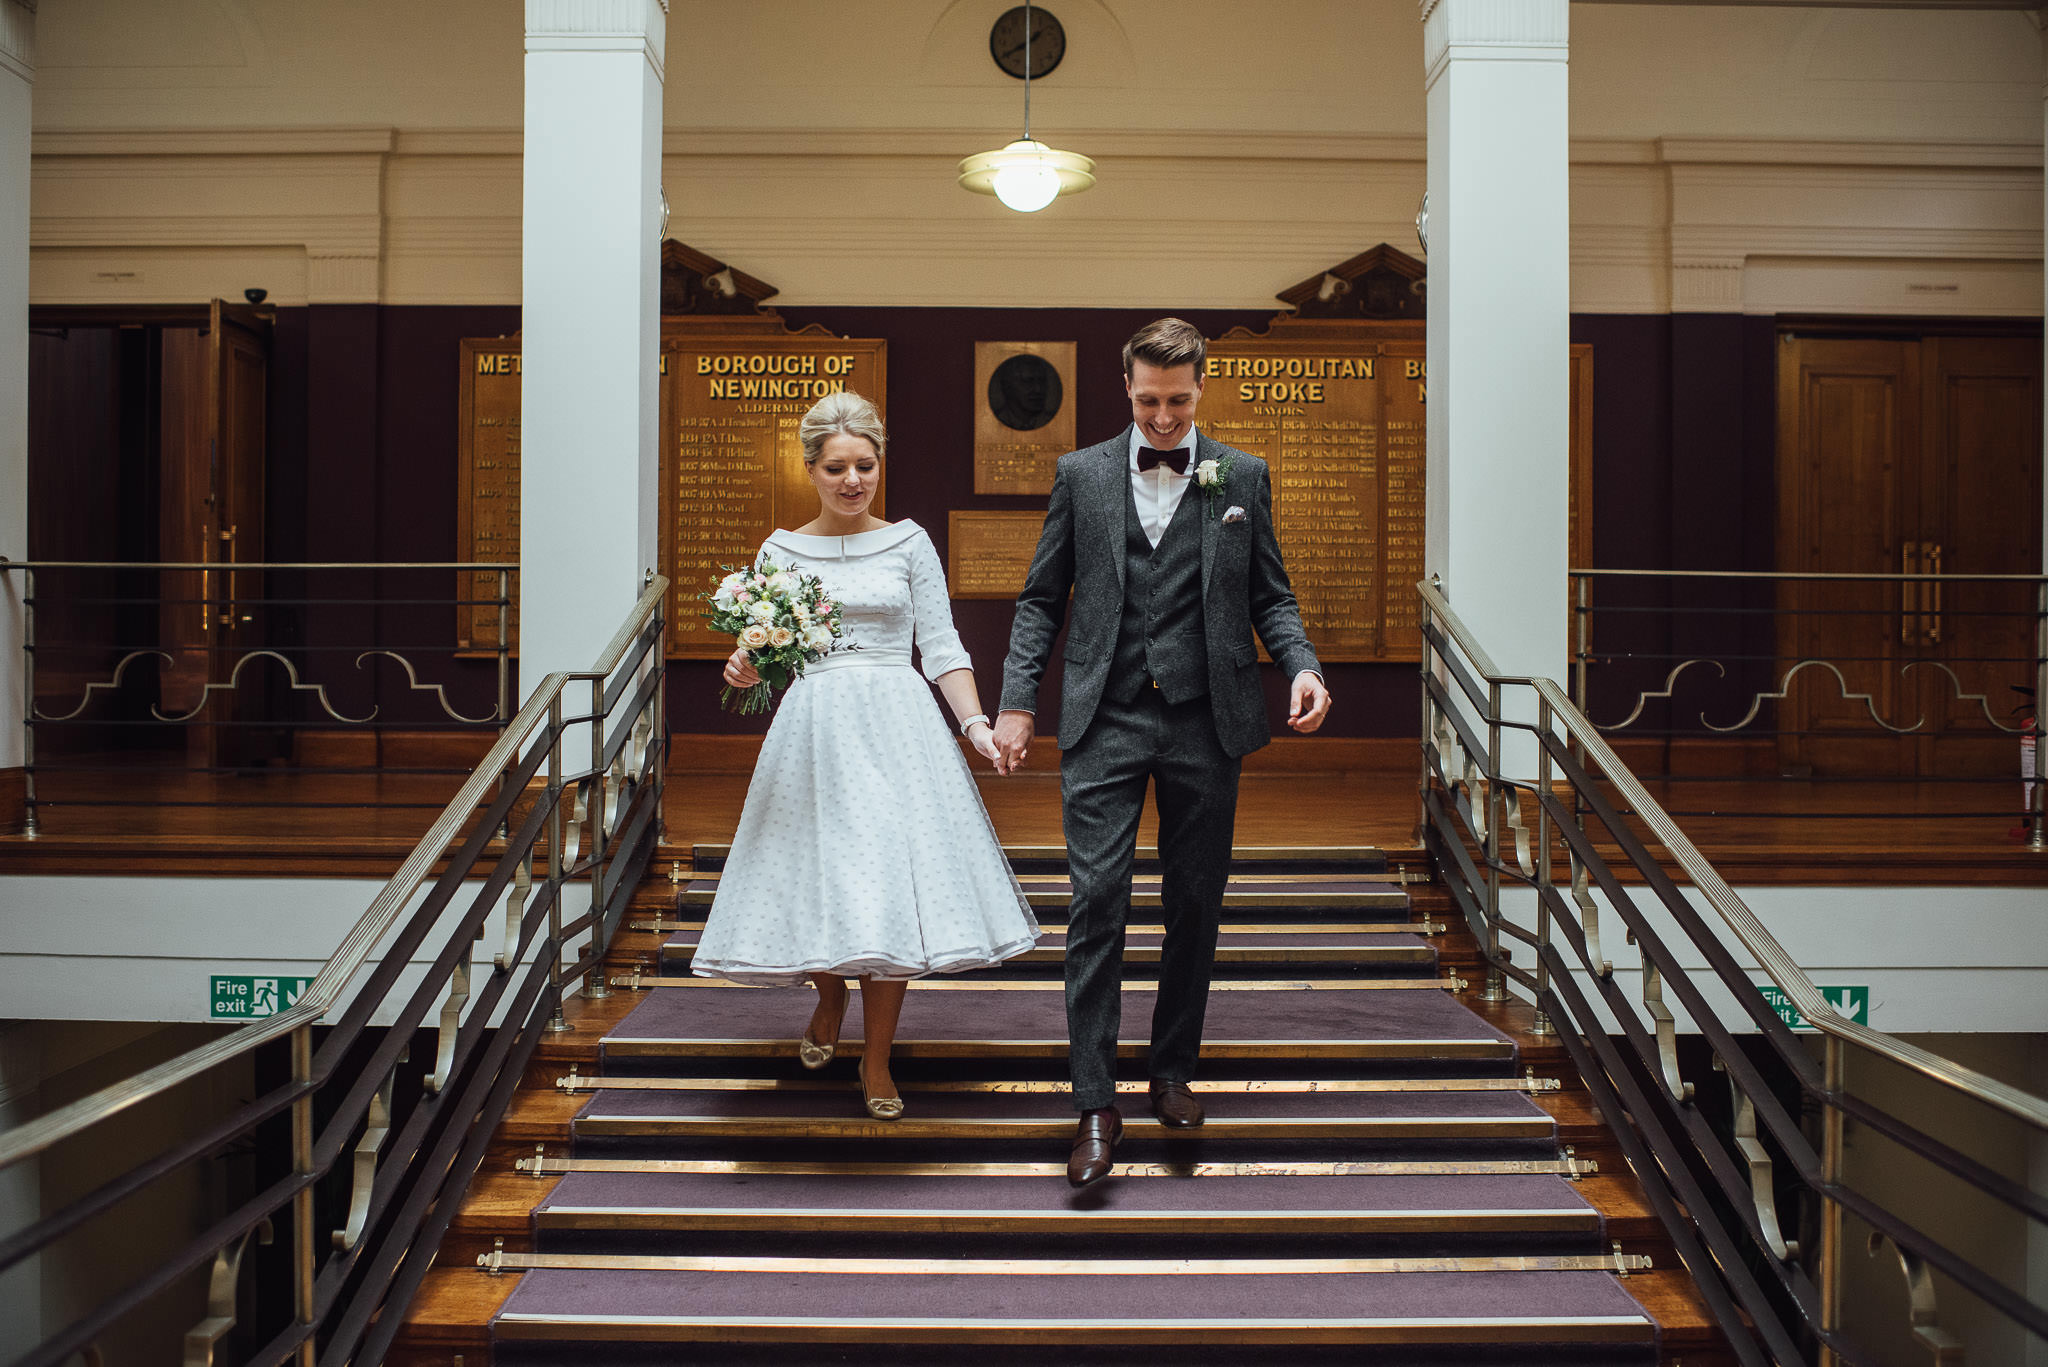 Bohemian vegan couple in stoke newington town hall wedding by creative and alternative london wedding photographer the shannons photography